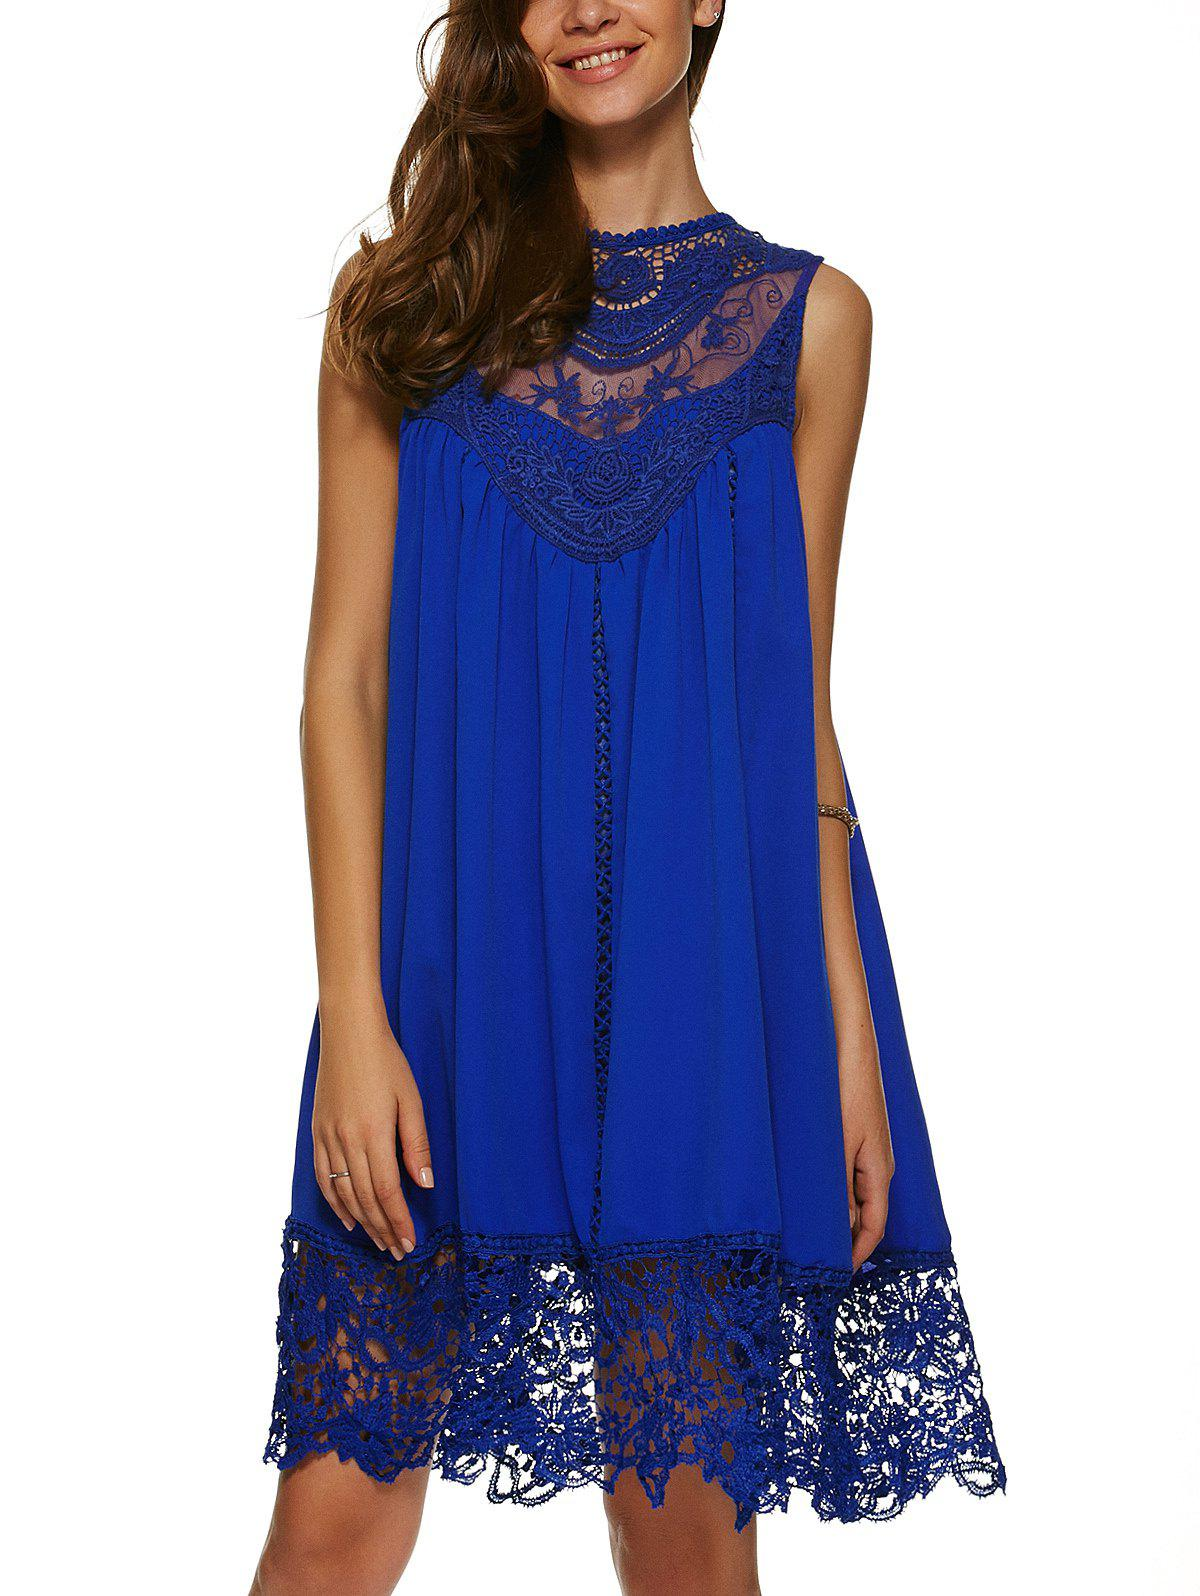 Lace Spliced Loose Fitting Shift DressWomen<br><br><br>Size: XL<br>Color: SAPPHIRE BLUE